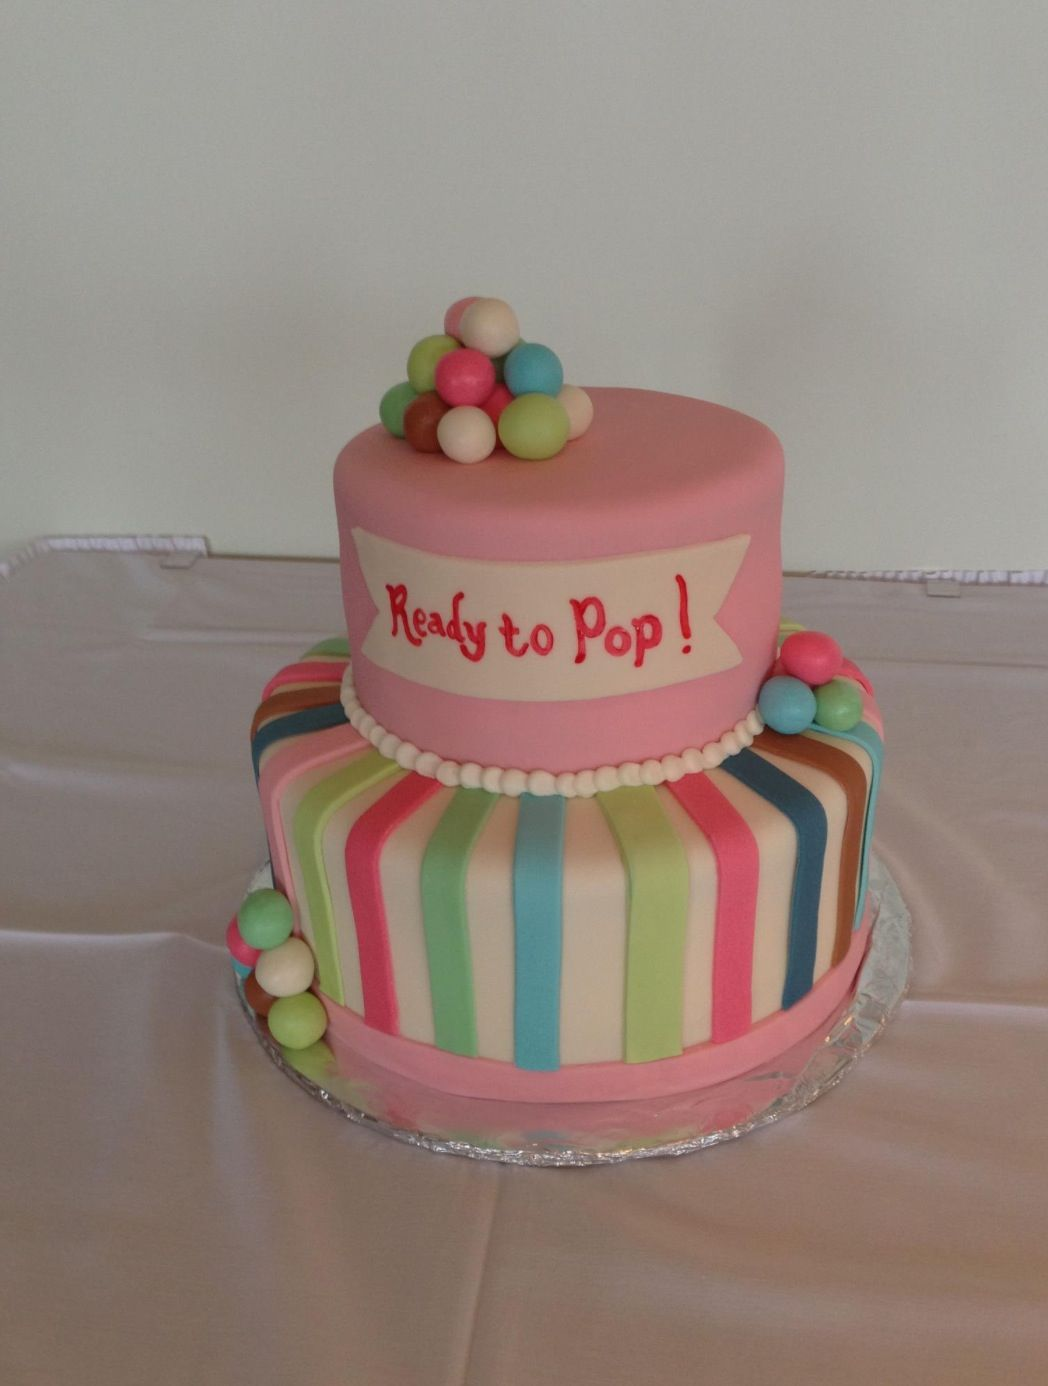 Ready to pop cake.